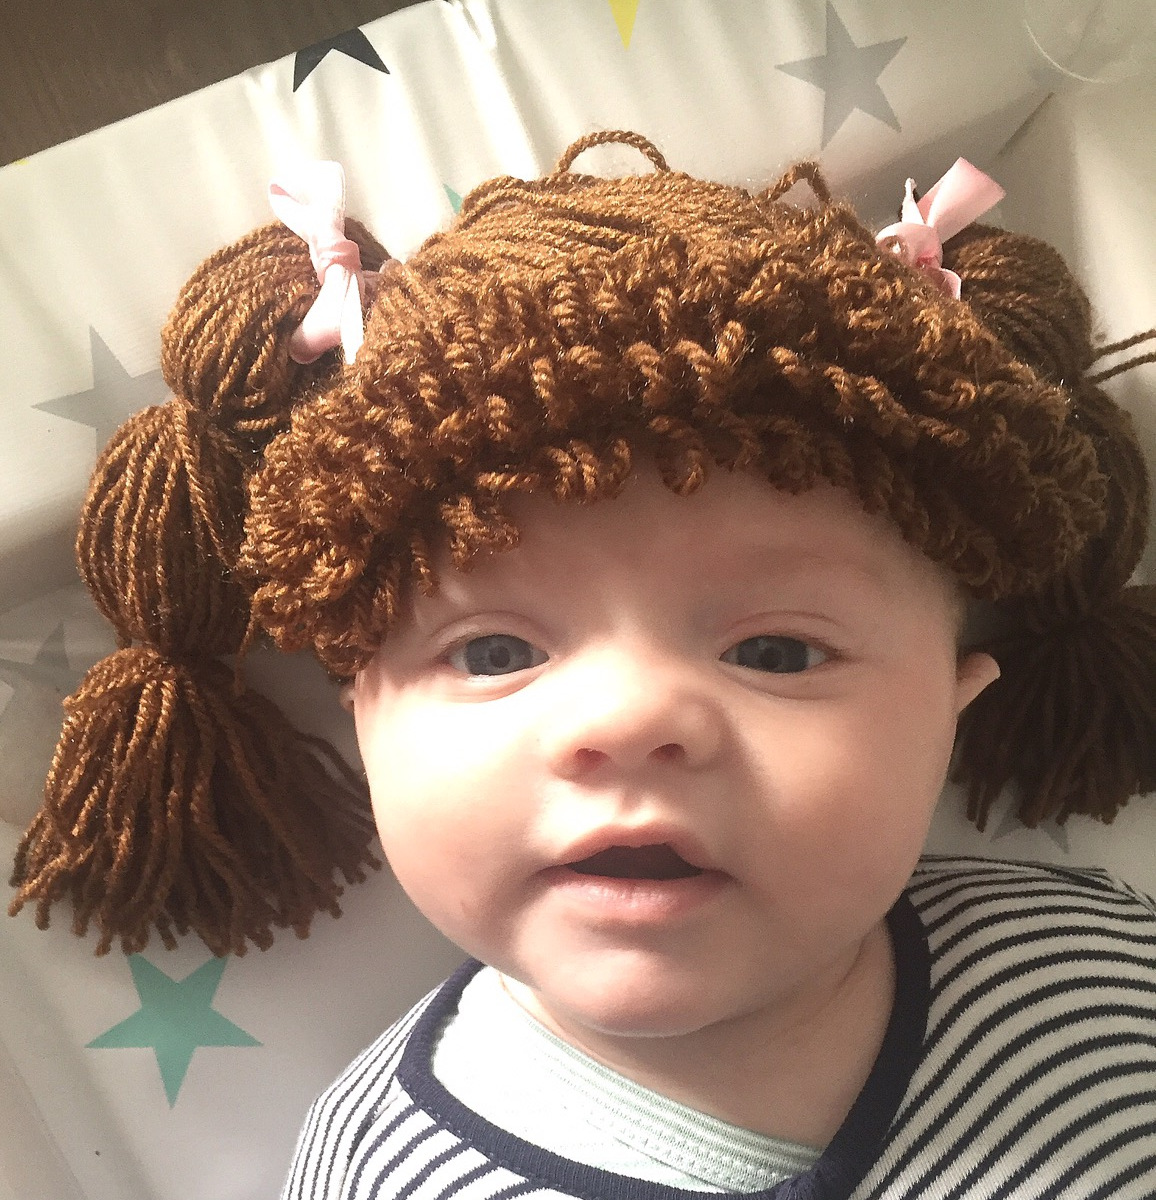 If you want to have your kid look like an adorable cabbage patch doll, check out these ideas on how to make your own crochet cabbage patch wigs. We have the best cabbage patch doll wig ideas!